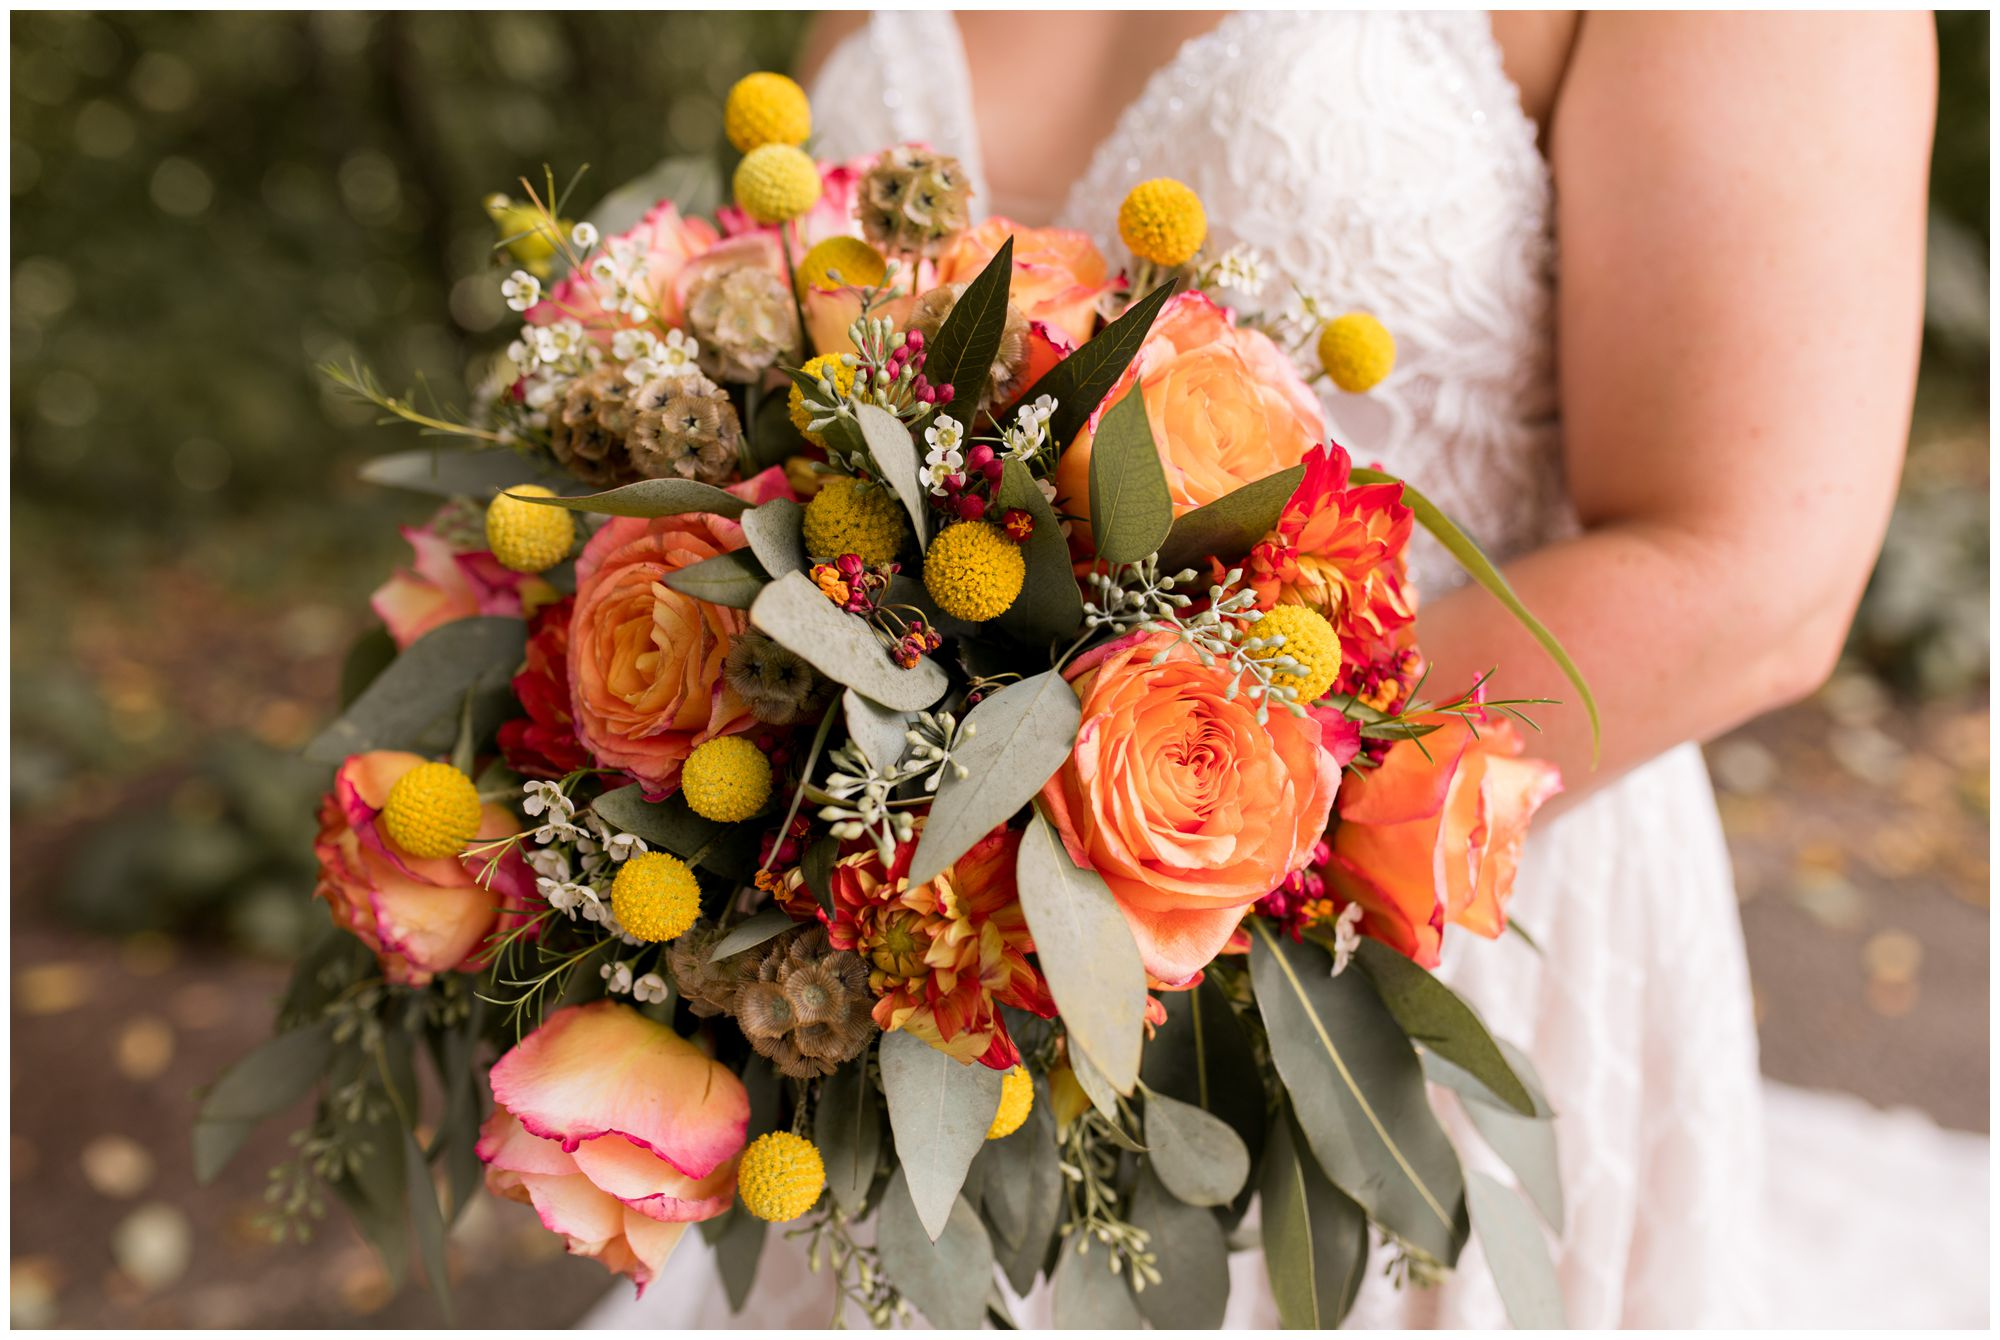 bride's bouquet from Ayers Flowers in Indianapolis